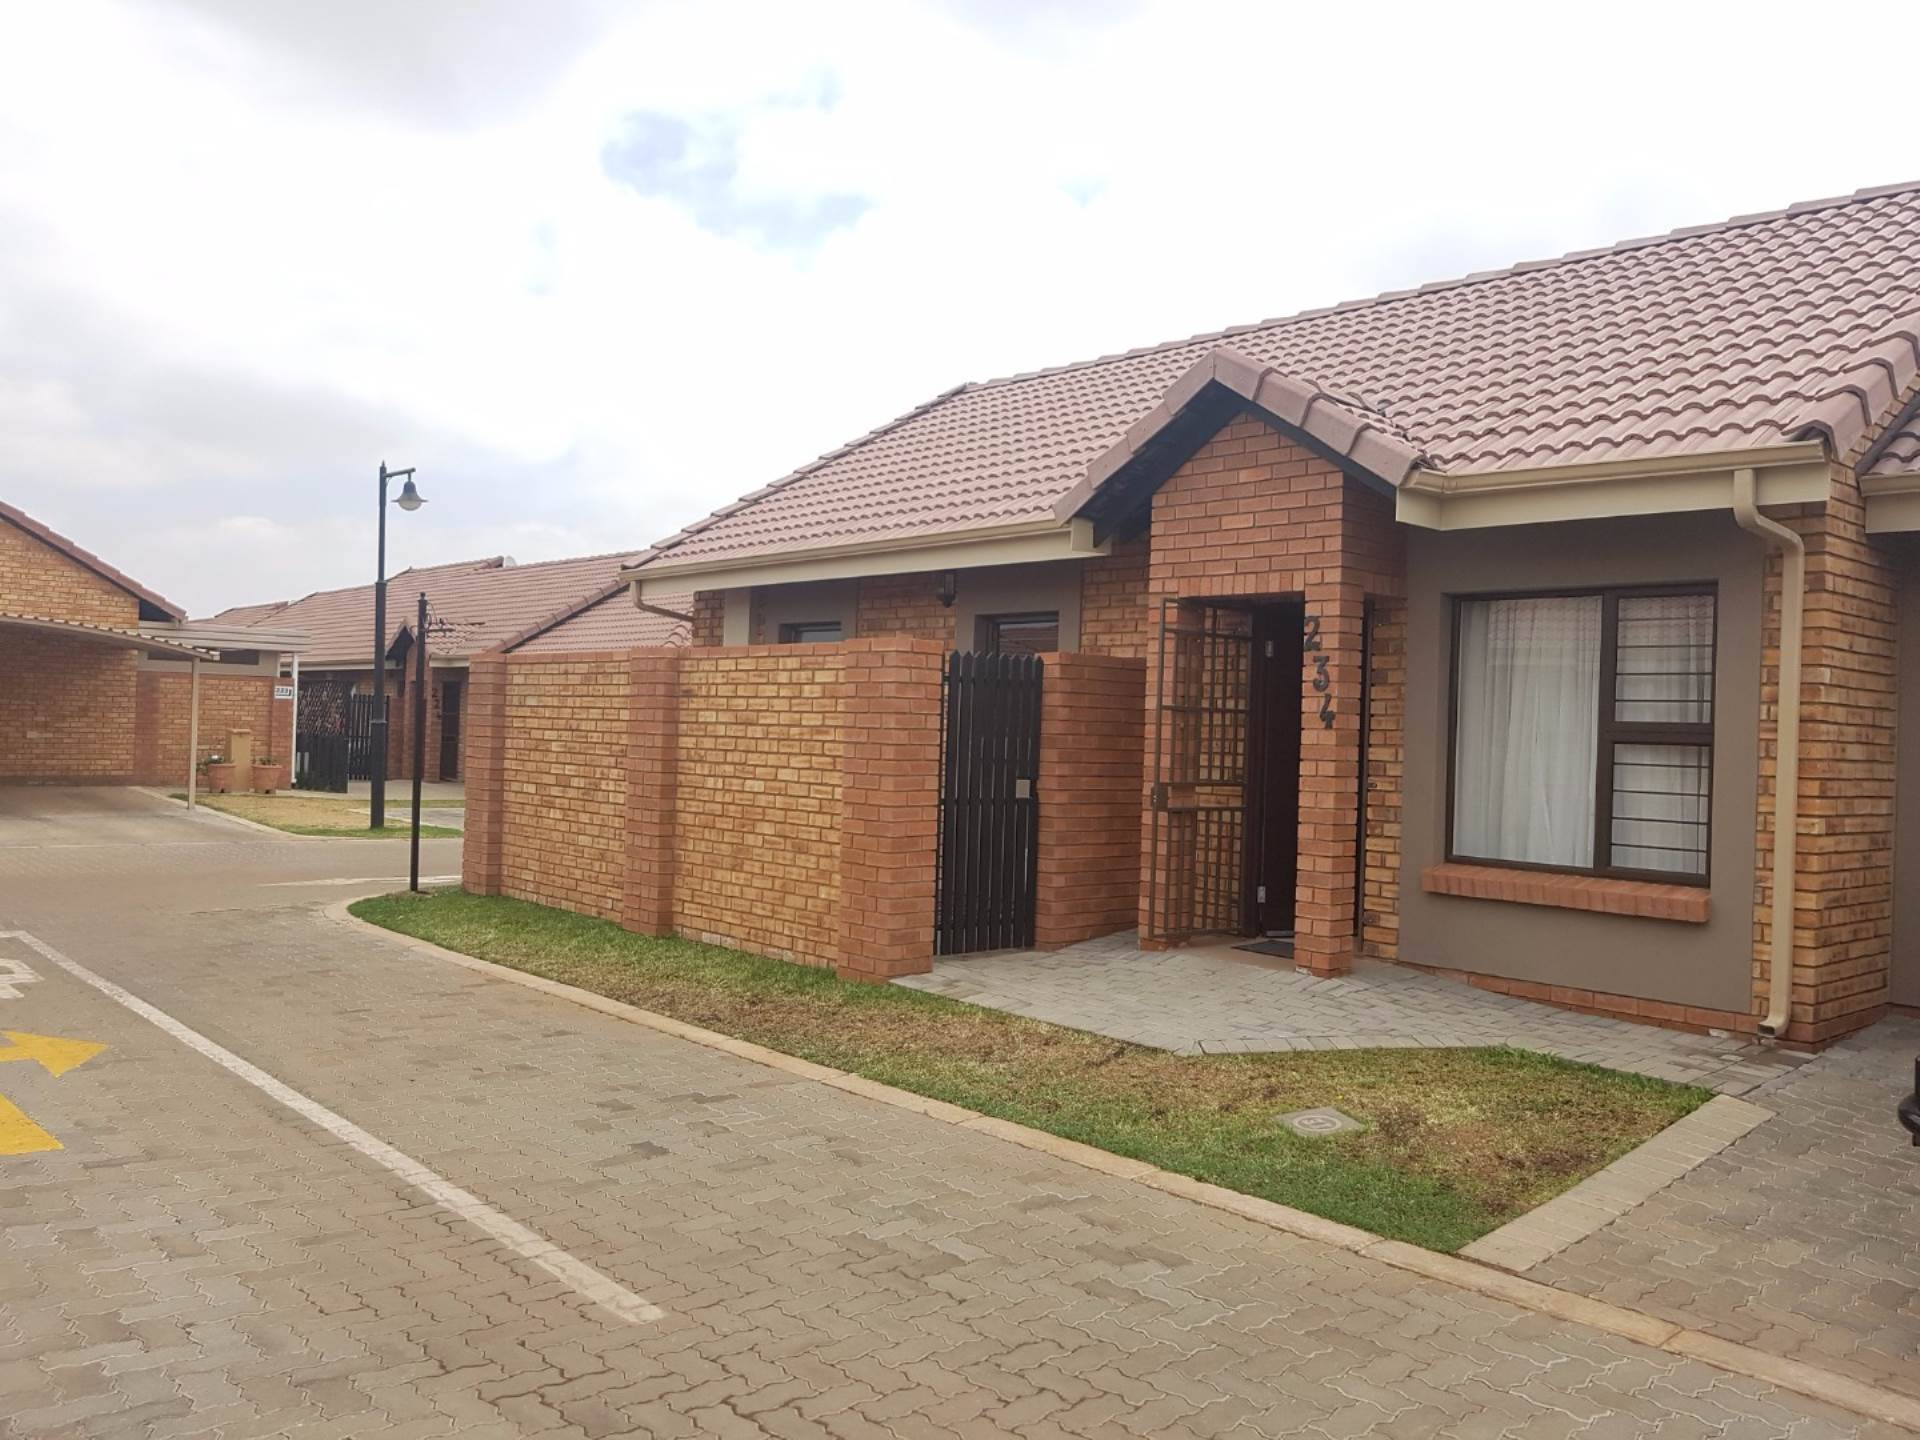 2 BedroomTownhouse For Sale In Brentwood Park